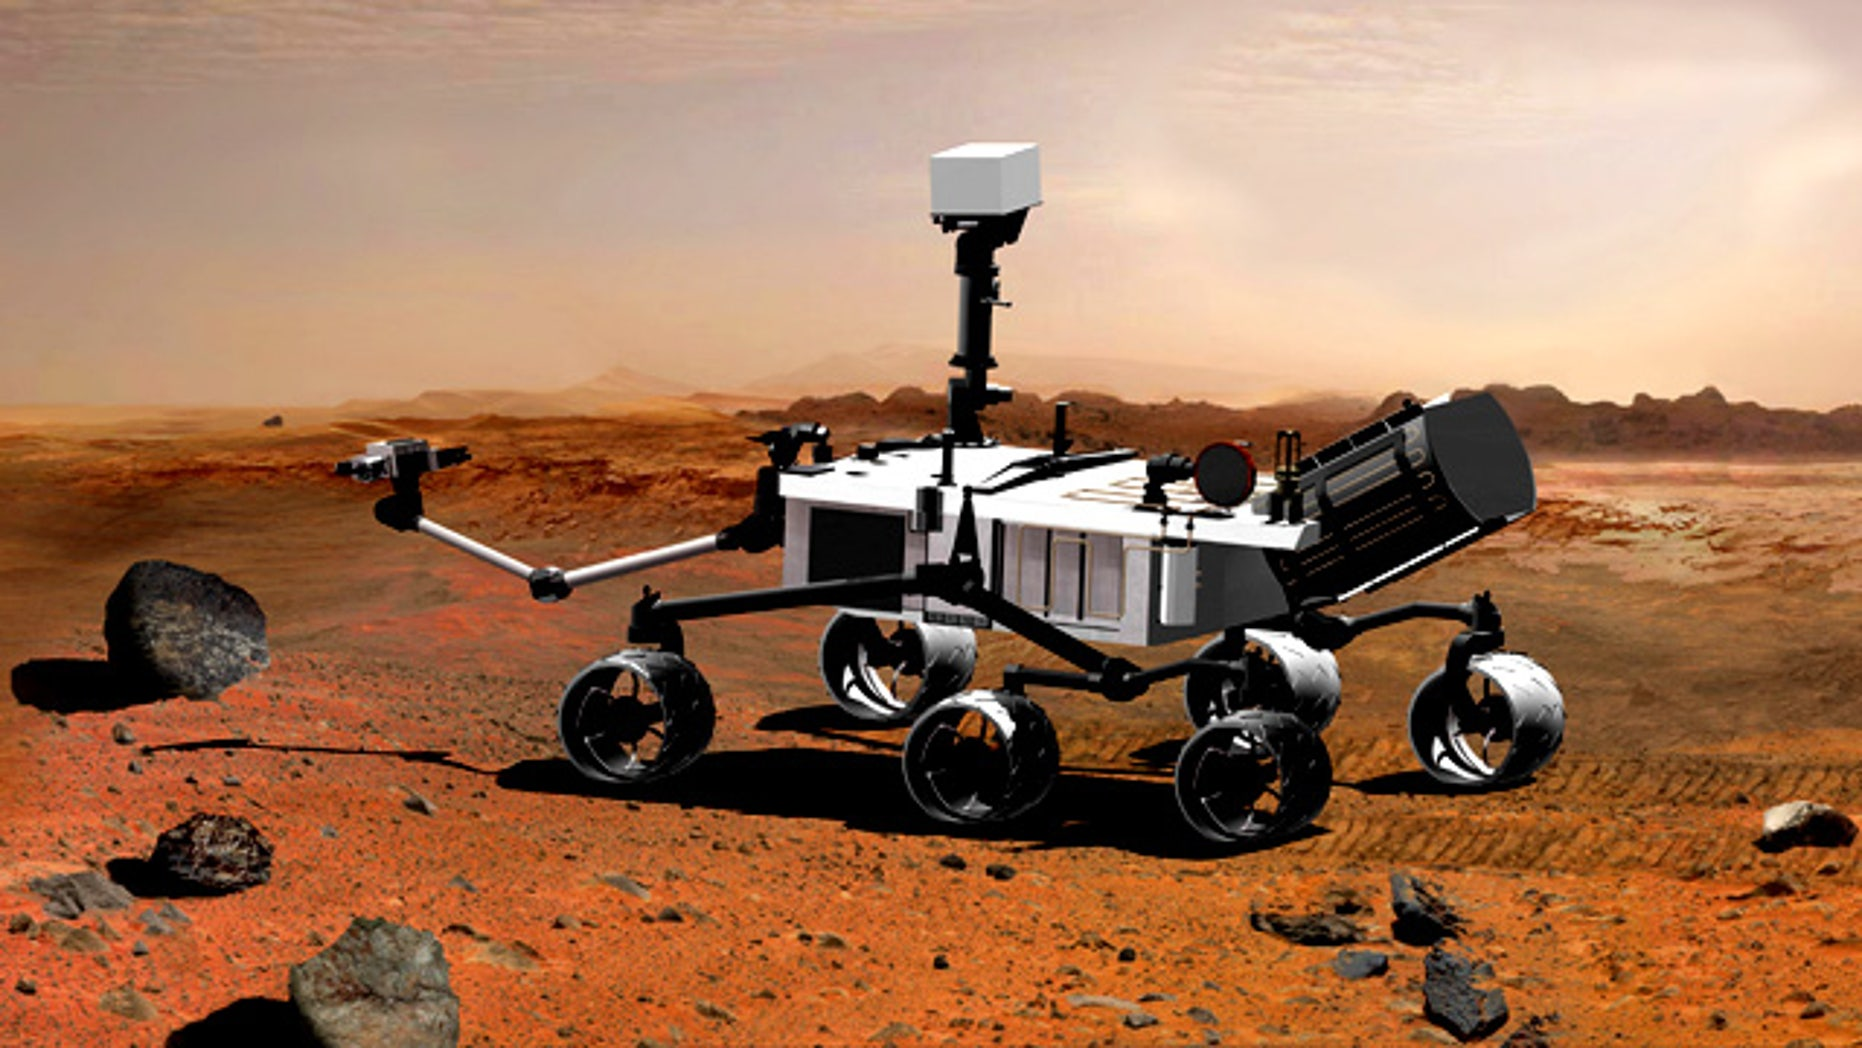 An artist's conception of NASA's next Martian rover, called Curiosity, one of many U.S. missions to the Red Planet run by the Jet Propulsion Lab.